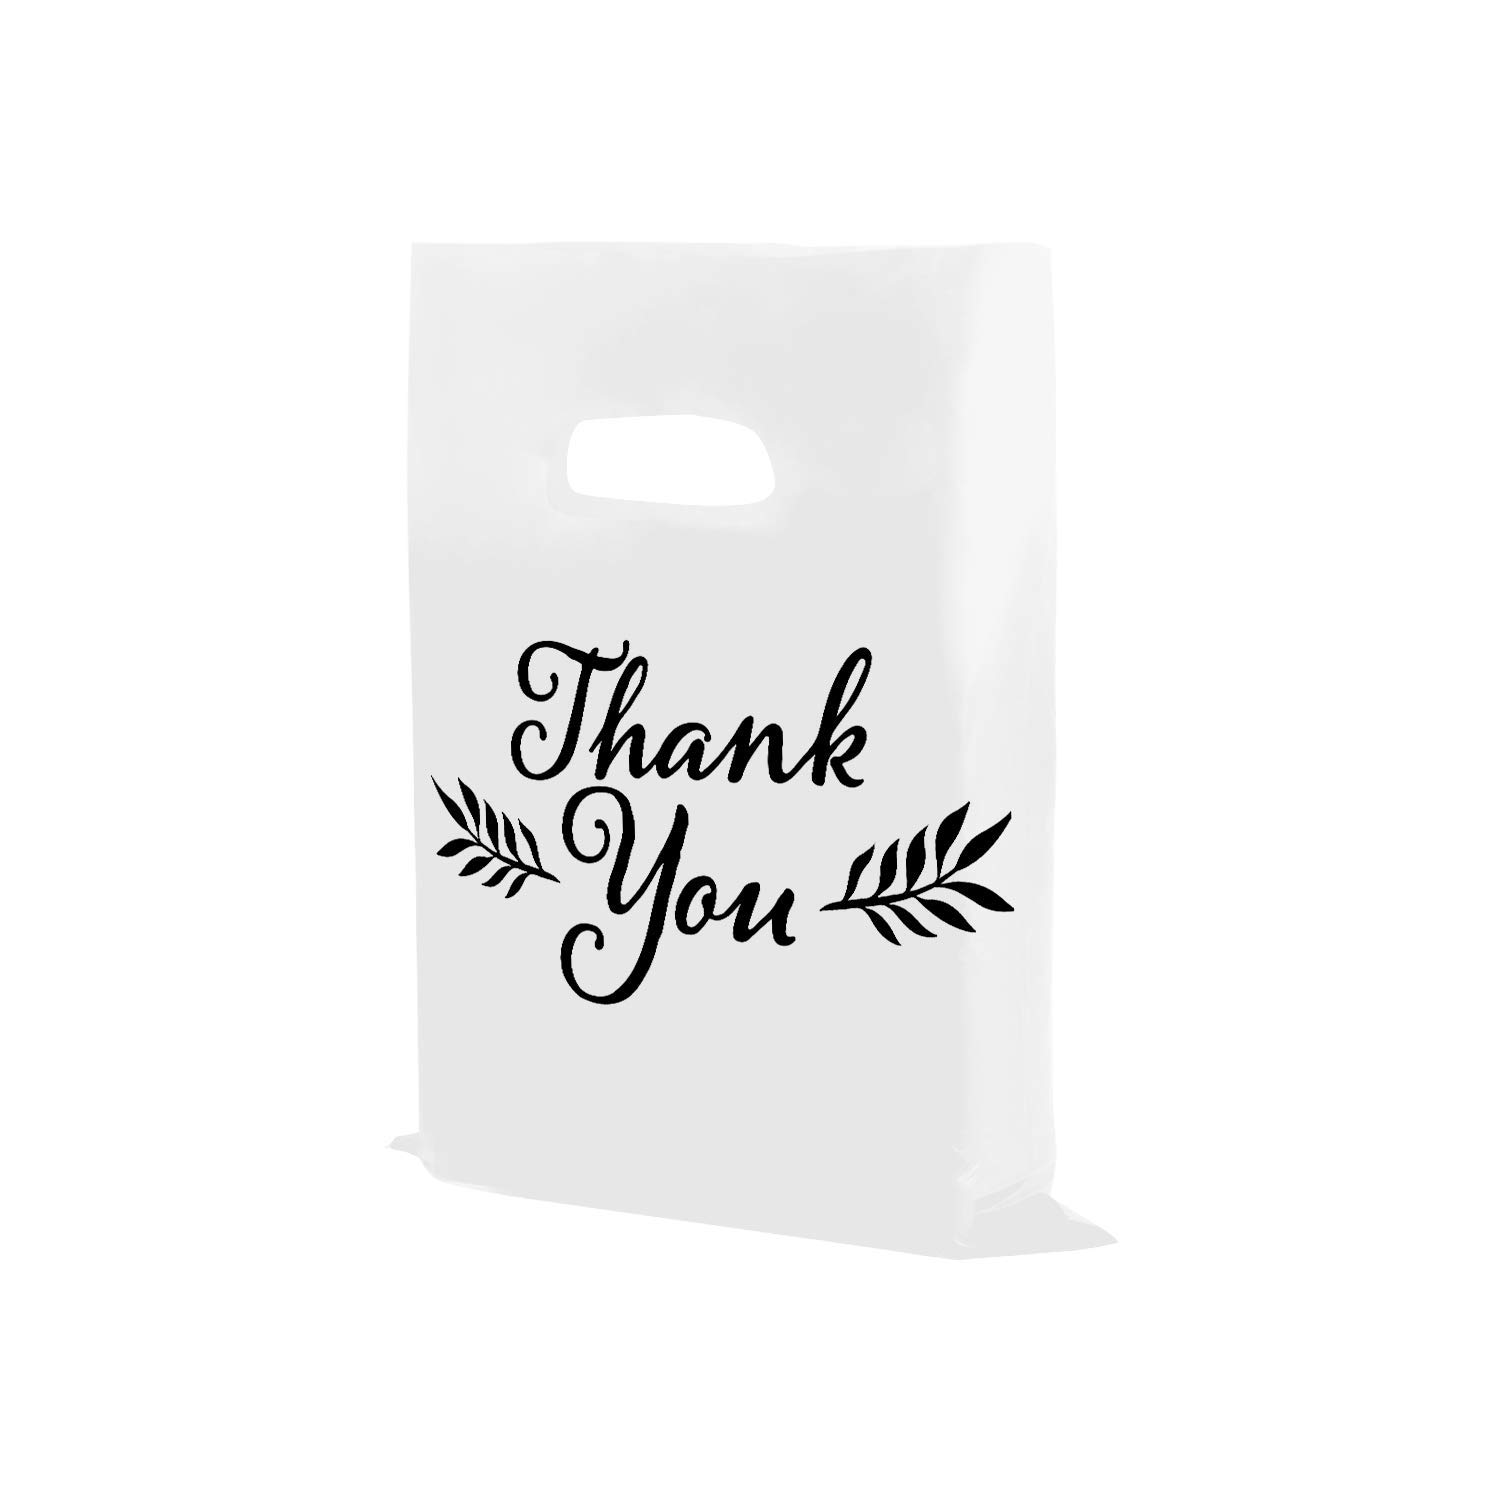 Houseables Thank You Merchandise Bags, Retail Shopping Goodie Bag, Plastic, 16'' x 18'', 100 Pk, 1.75 Mil Thick, Low Density, Glossy, Black and White Color, with Handles, for Stores, Boutiques, Clothes